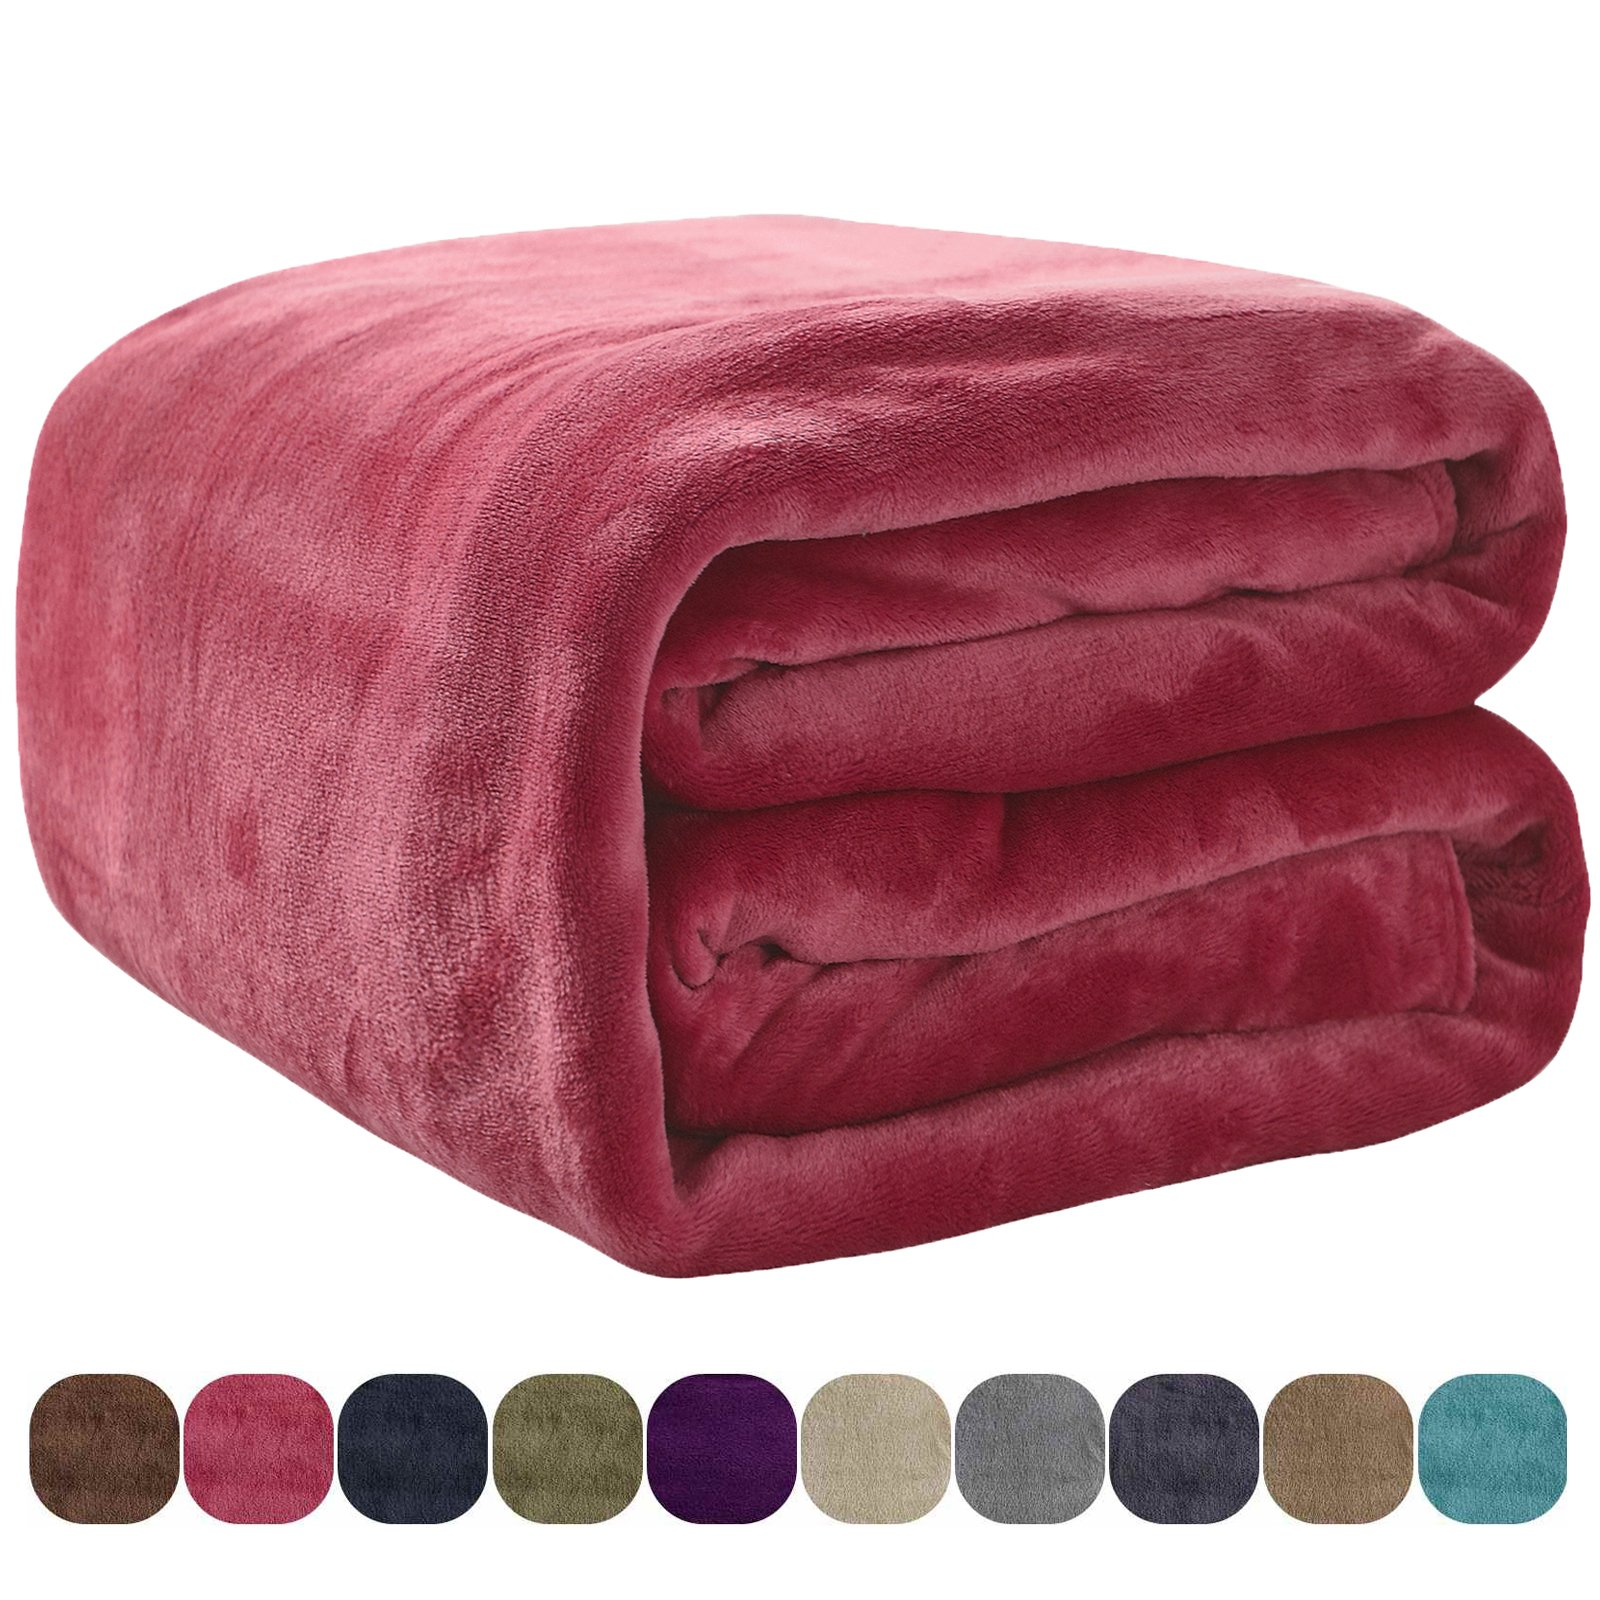 VEEYOO Flannel Fleece Throw Blanket Red 50'' x 60'' - All Seasons Lightweight Extra Soft Plush Microfiber Fleece Blankets for Sofa, Couch, Air-Conditioner Room